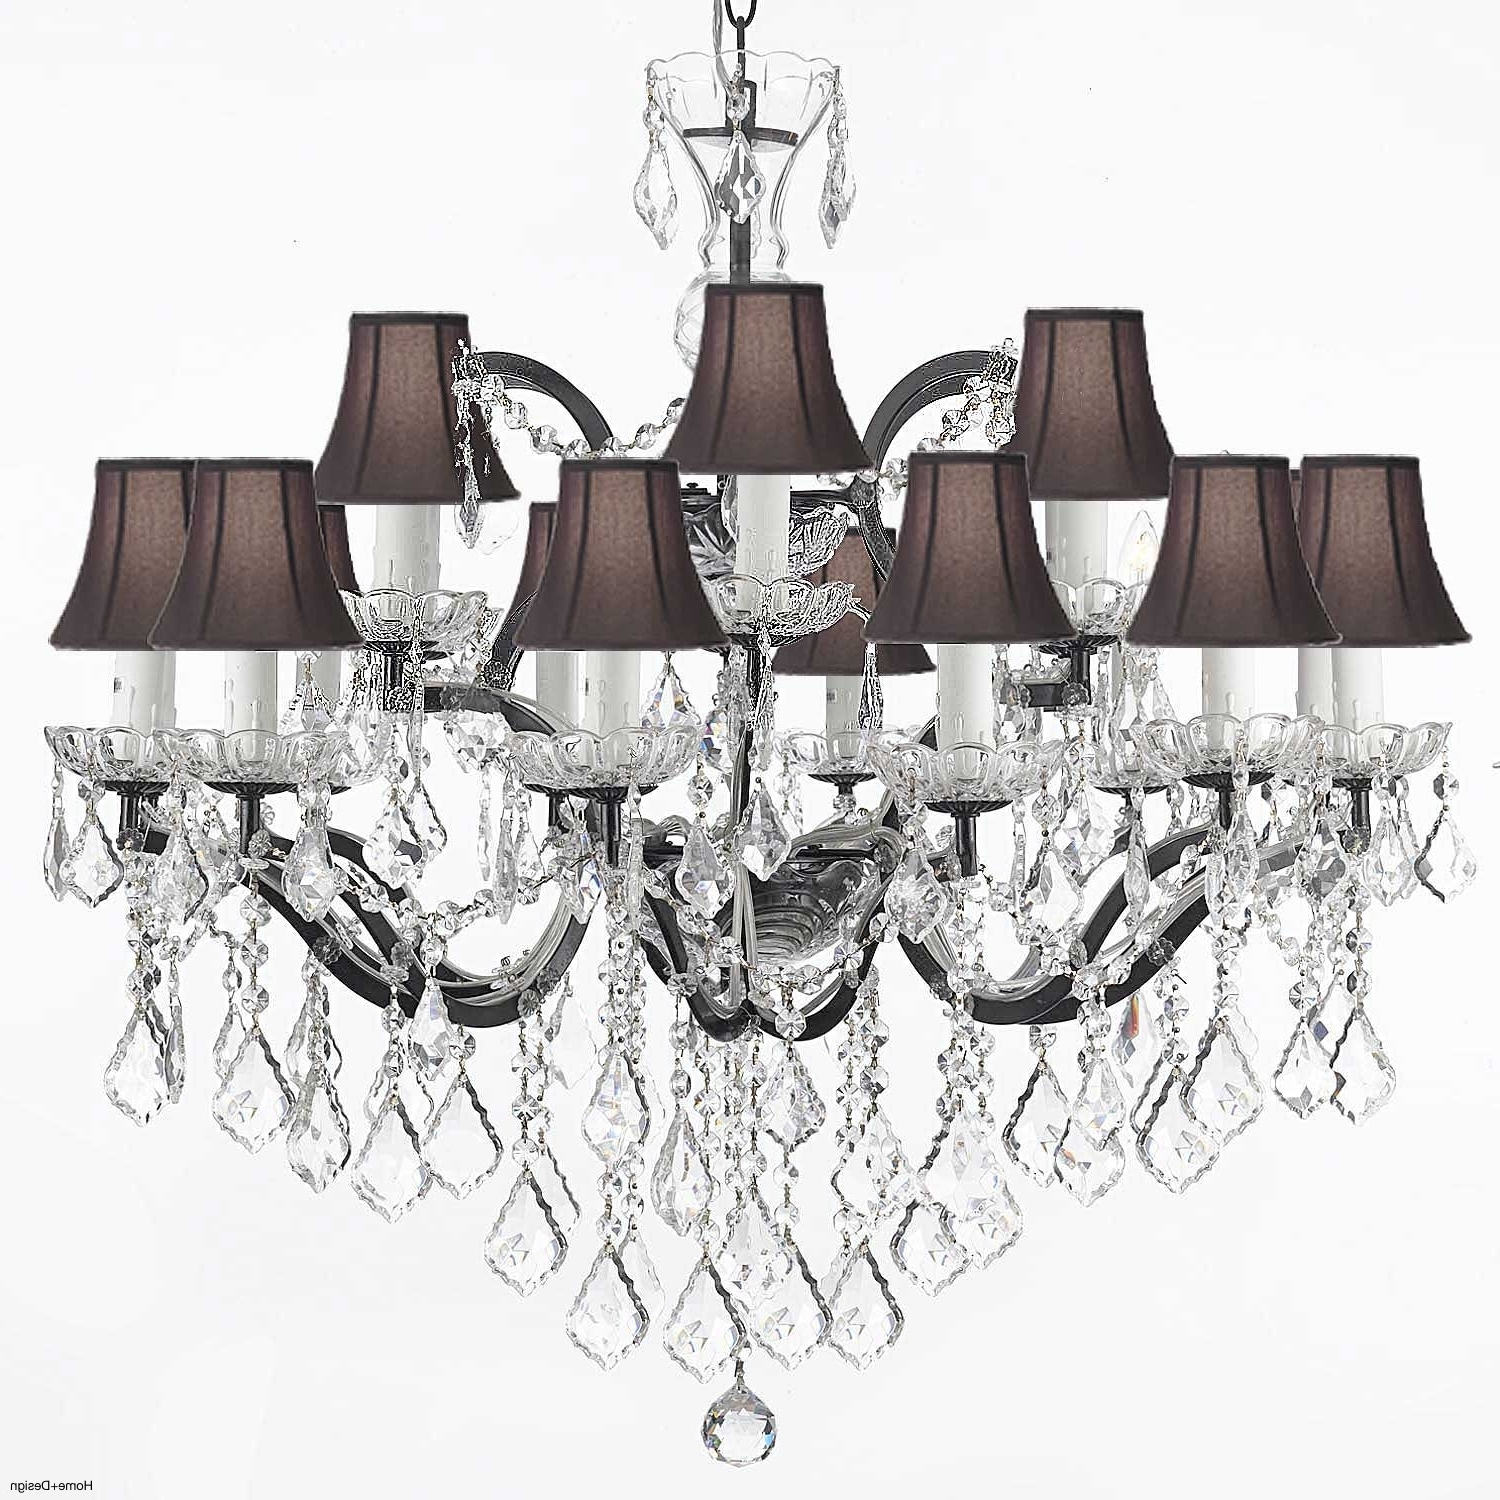 Clip On Chandelier Lamp Shades Regarding Famous Clip On Lamp Shades For Chandeliers Uk – Chandelier Designs (View 4 of 20)